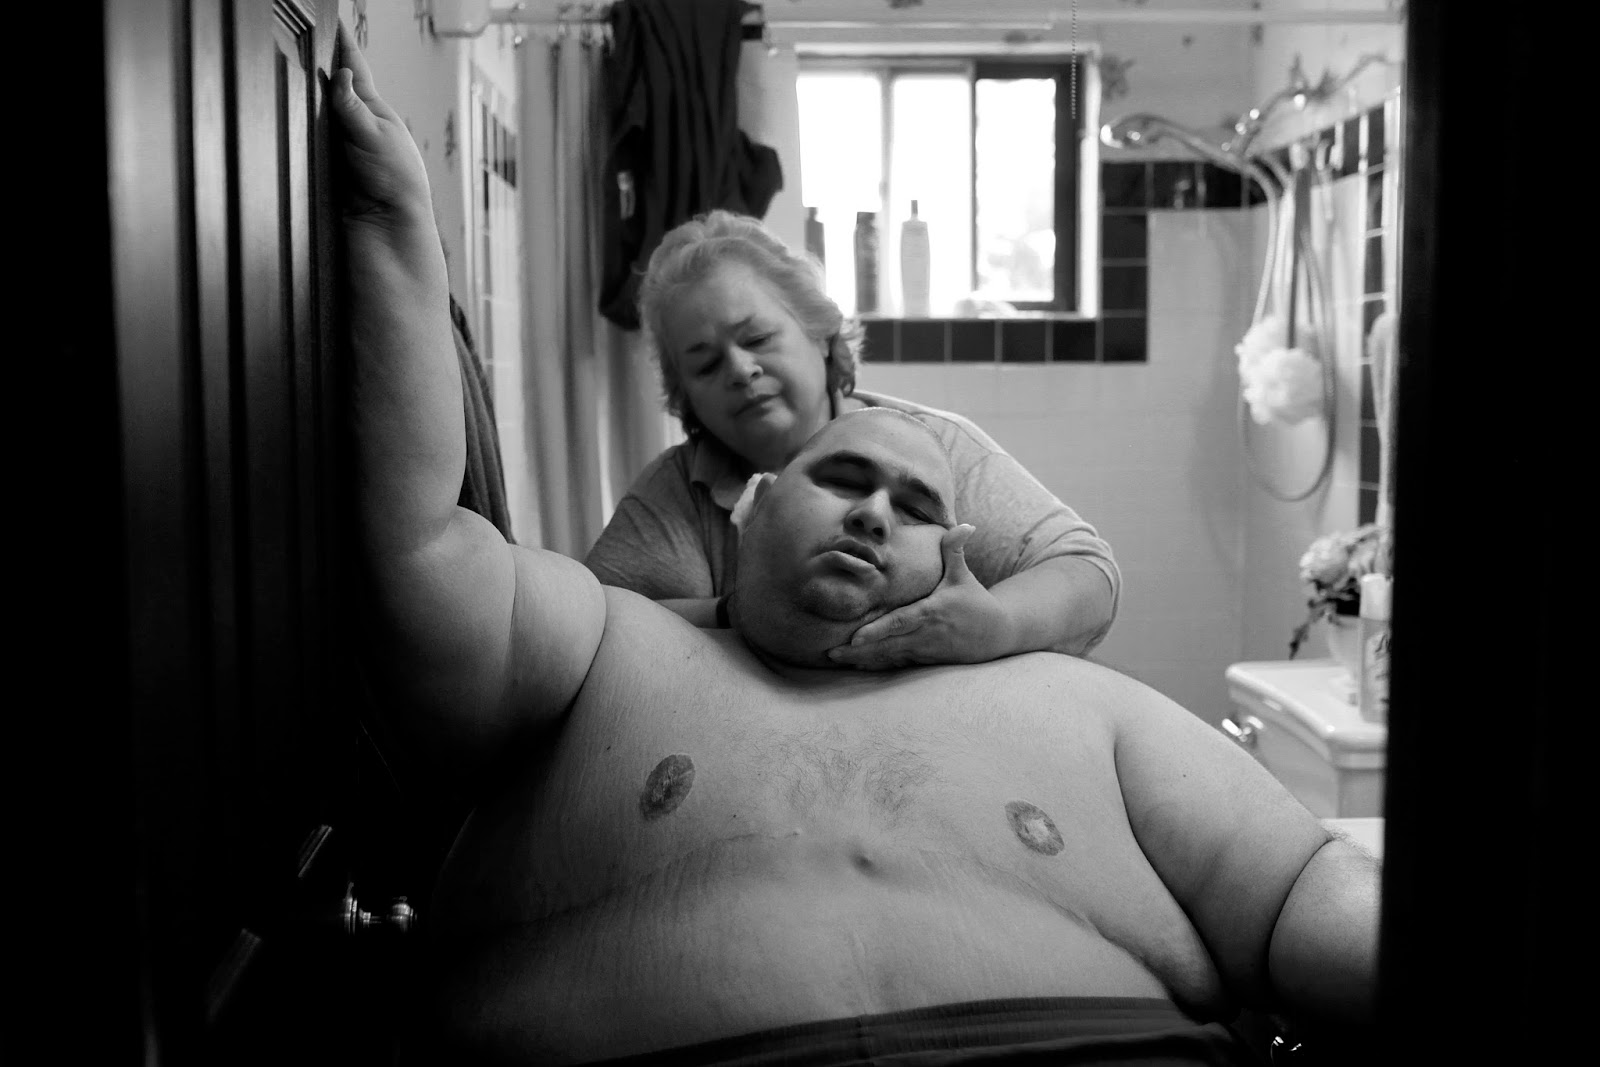 Copyright: ©Lisa Krantz, United States, Shortlisted, Contemporary Issues, Professional, 2015 Sony World Photography Awards. Image Name: A Life Apart: The Toll of Obesity. Image Description: At almost 600 pounds, Hector Garcia Jr. finds simple daily tasks like bathing a challenge. He struggled to walk across the hall from his bedroom to the bathroom so that his mother, Elena, could wash him after having cut his hair in November 2010. A month before, Hector started dieting after he realized he was close to his highest known weight, 636 pounds.